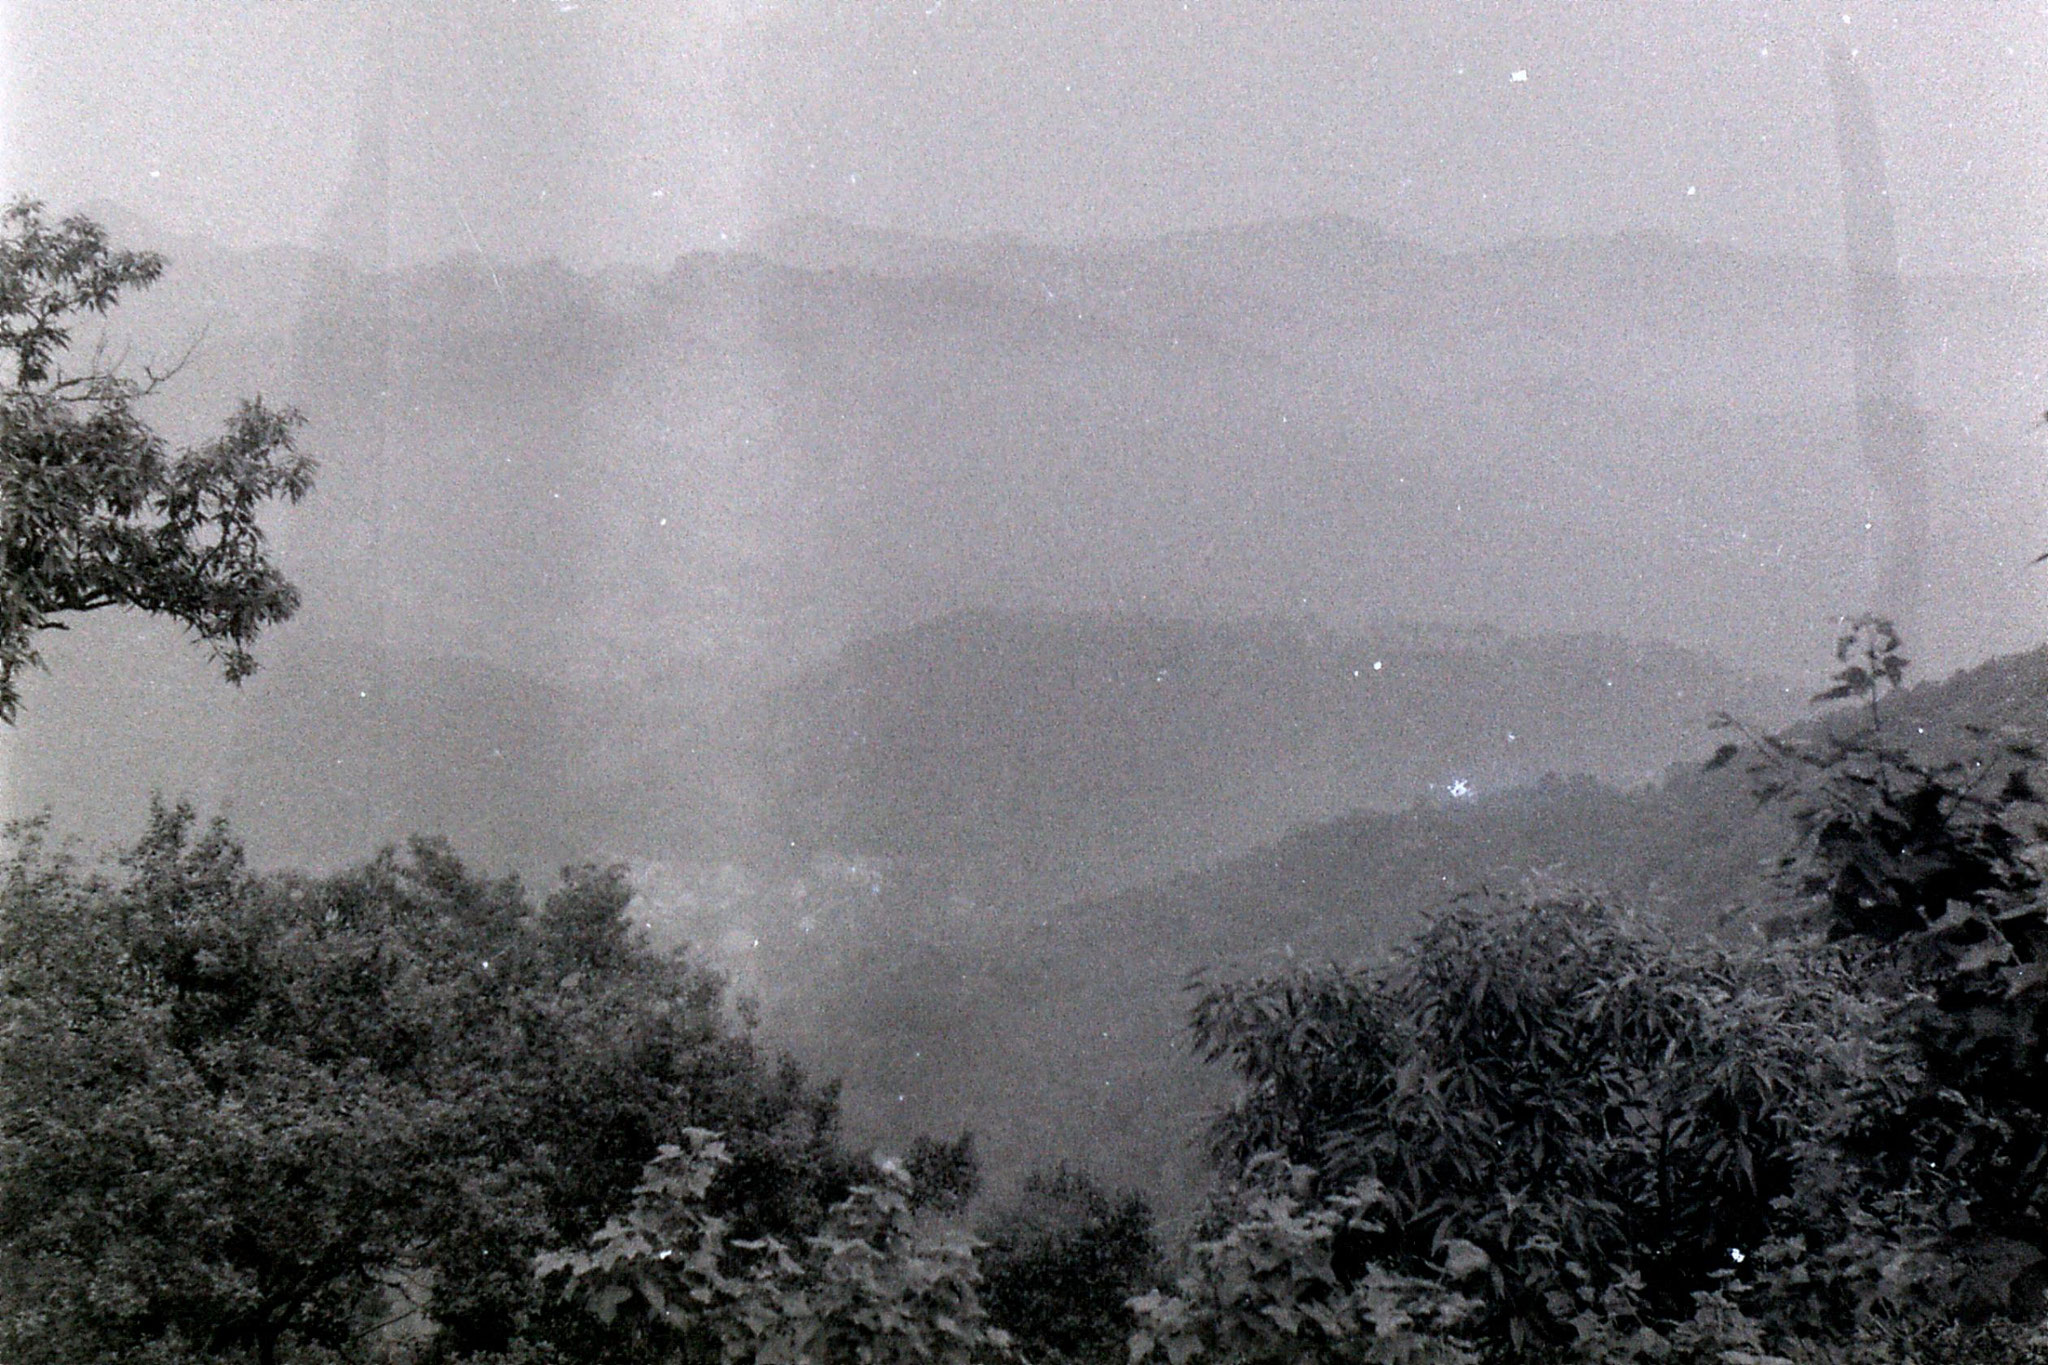 8/7/1989: 16: walk up Yu Huang Shu and view